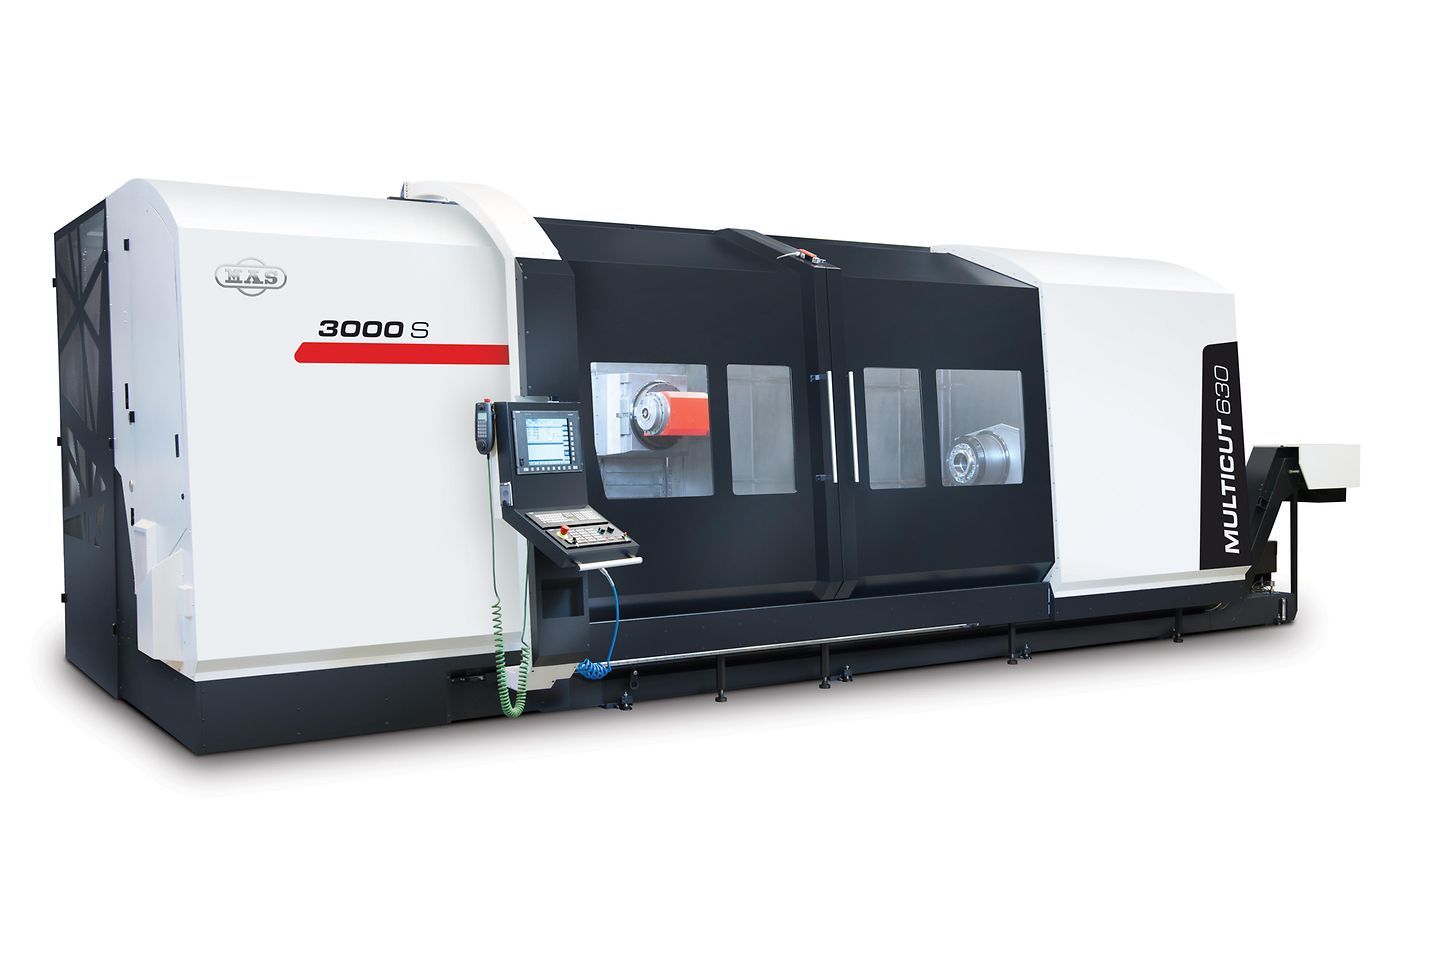 Machine tools are now assembled using the most modern adhesive and sealant technologies